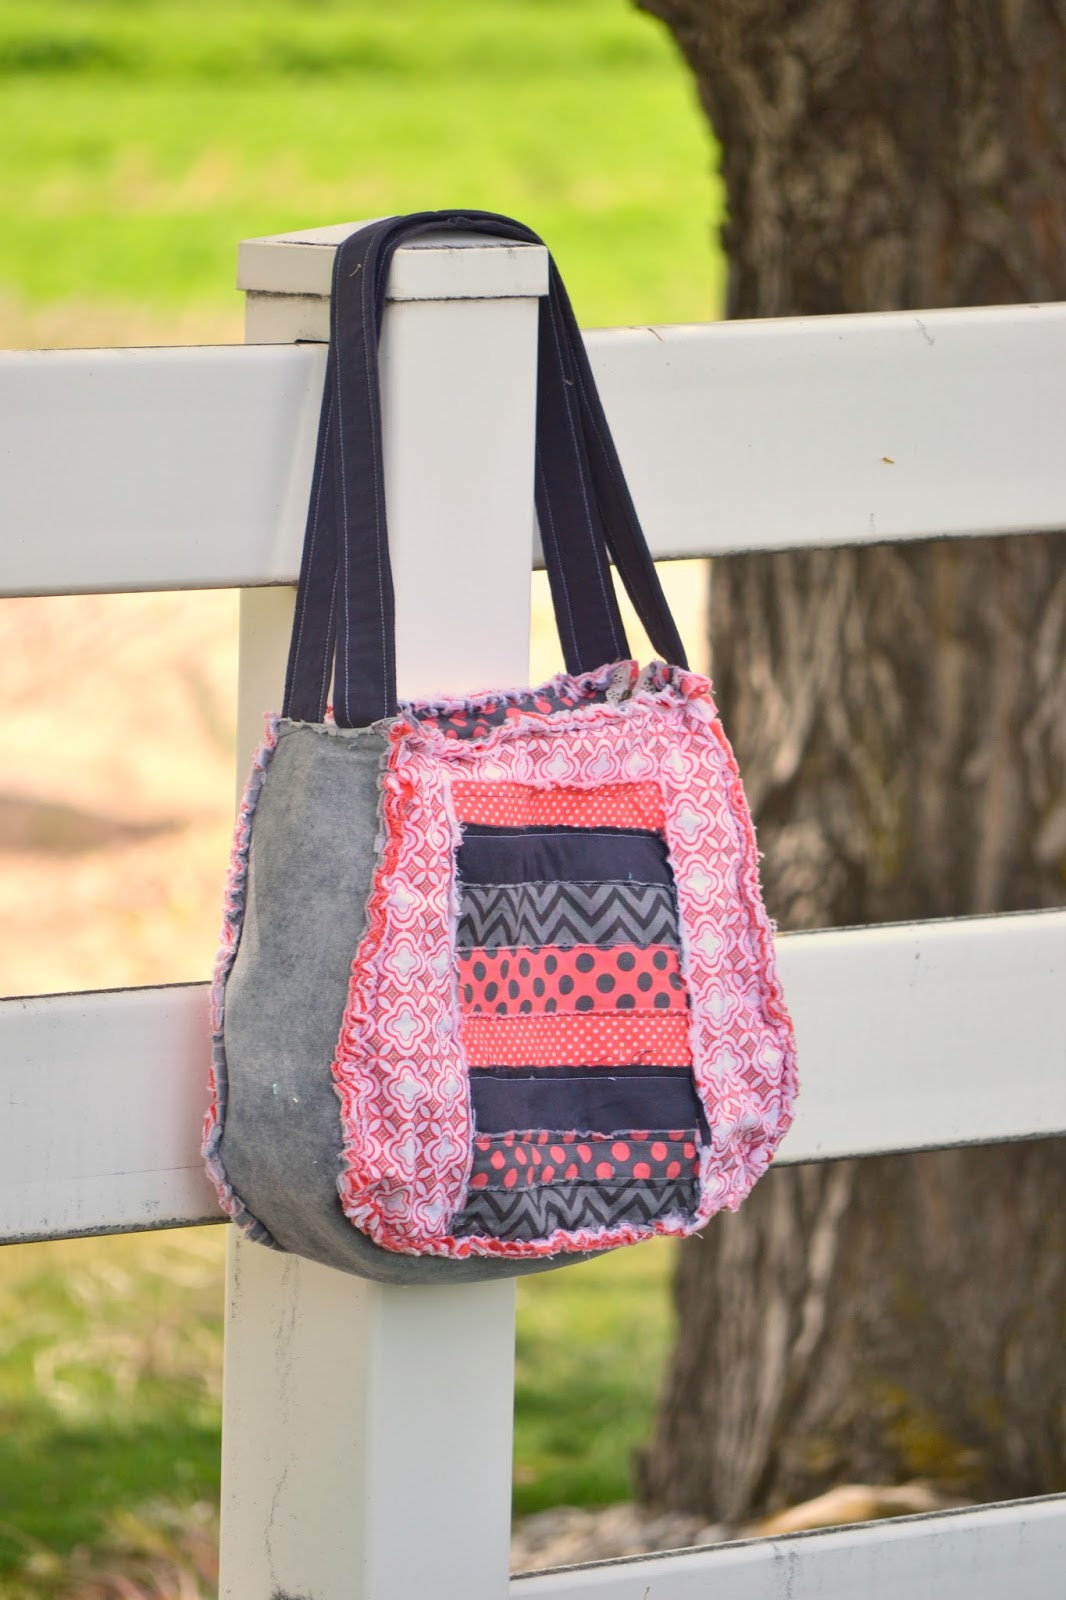 Rag Quilted Handbag Pattern : Lexi Lou Rag Handbag Pattern Release A Vision to Remember All Things Handmade Blog: Lexi Lou ...